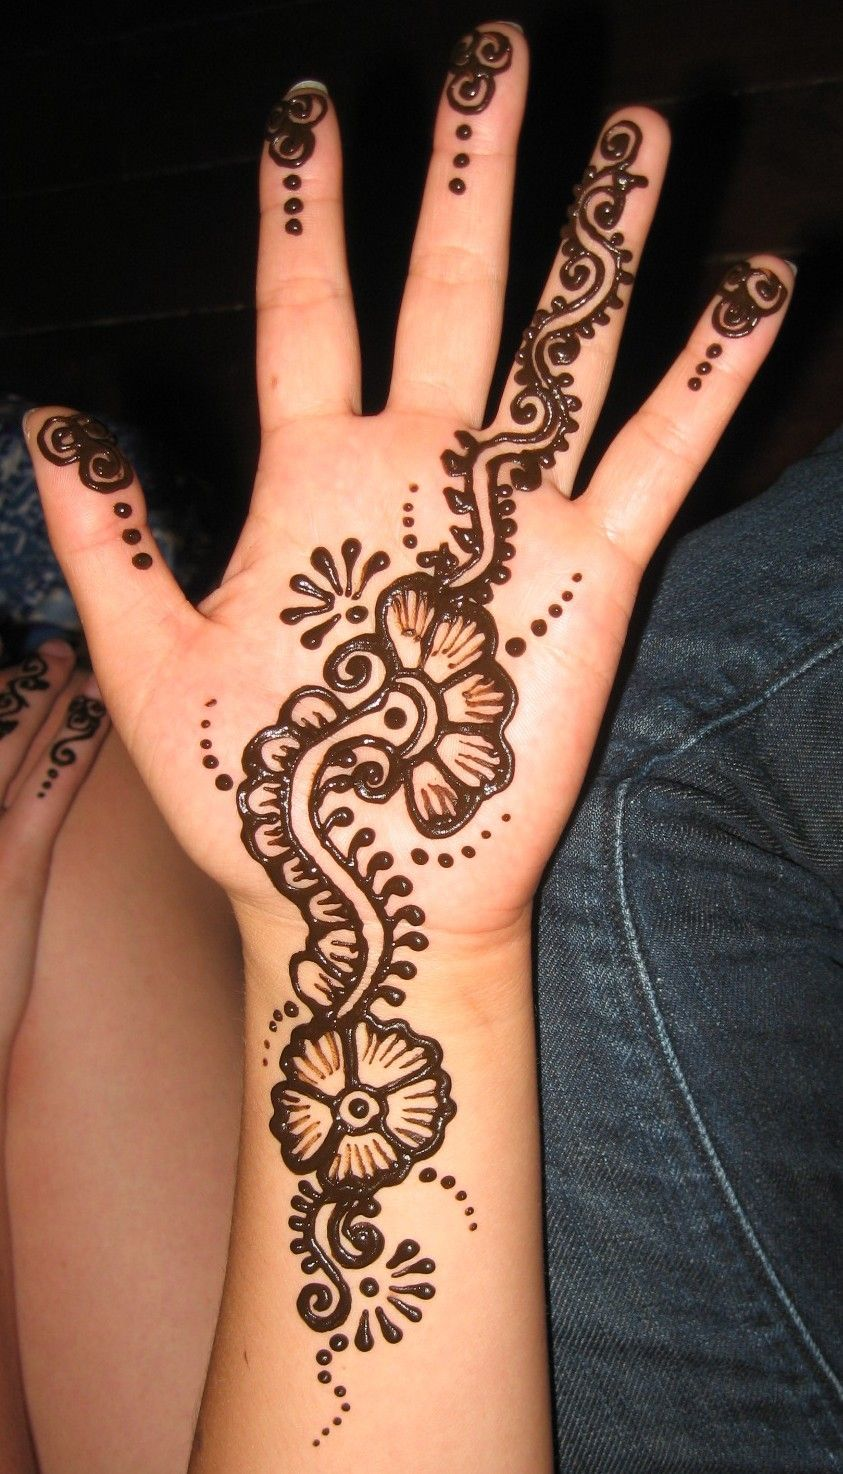 Simple Mehndi Designs For Hands Ssssss Pinterest Mehndi